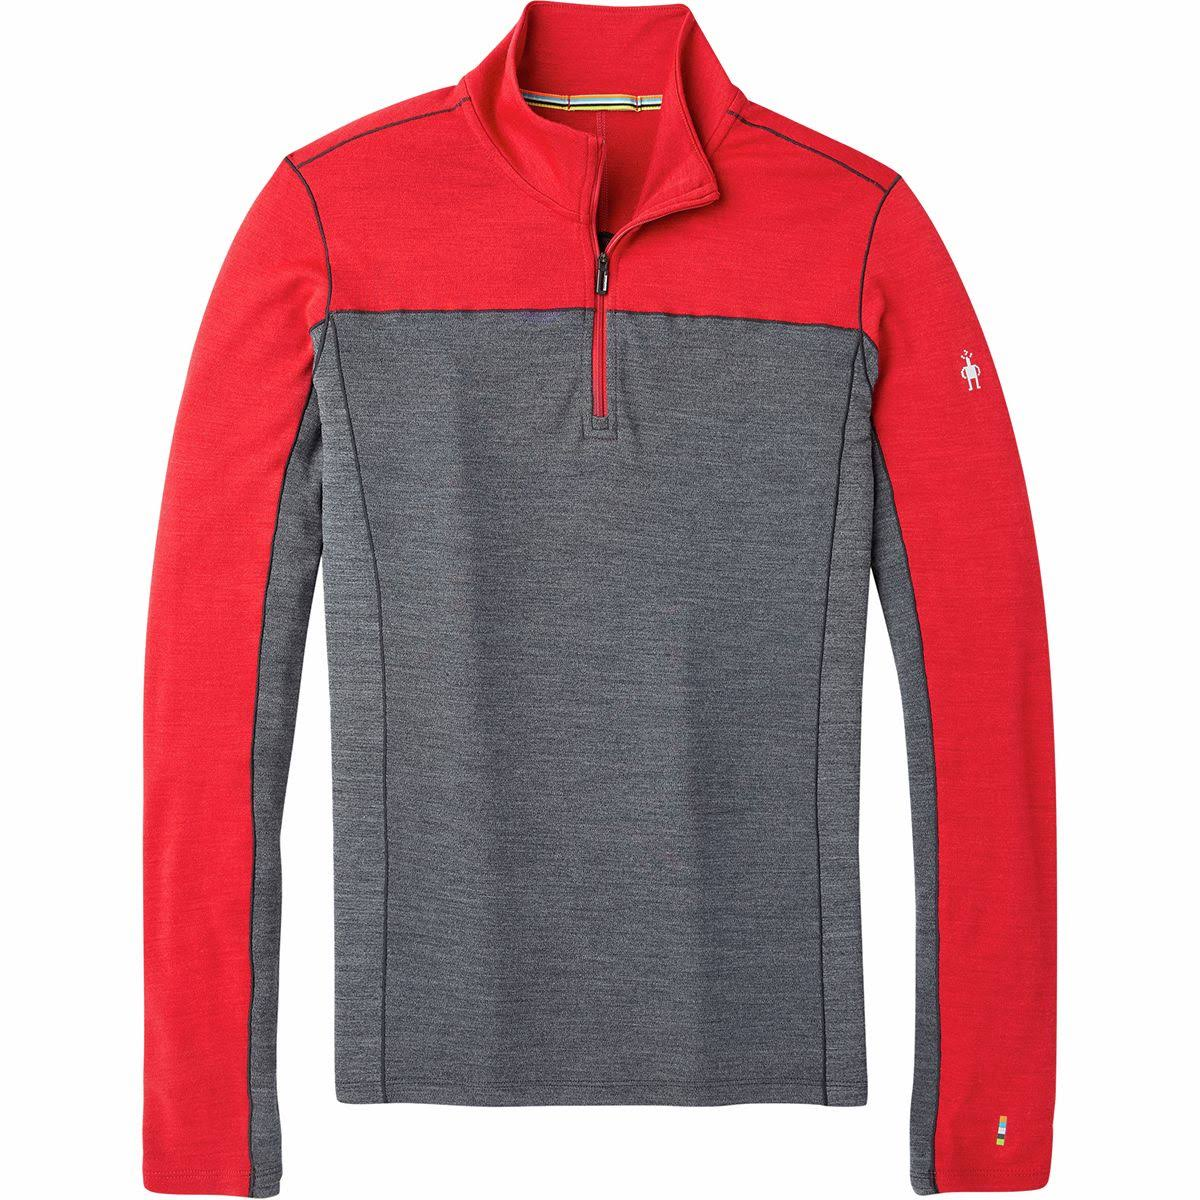 Smartwool Men's Merino Sport 250 Long Sleeve 1/4 Zip